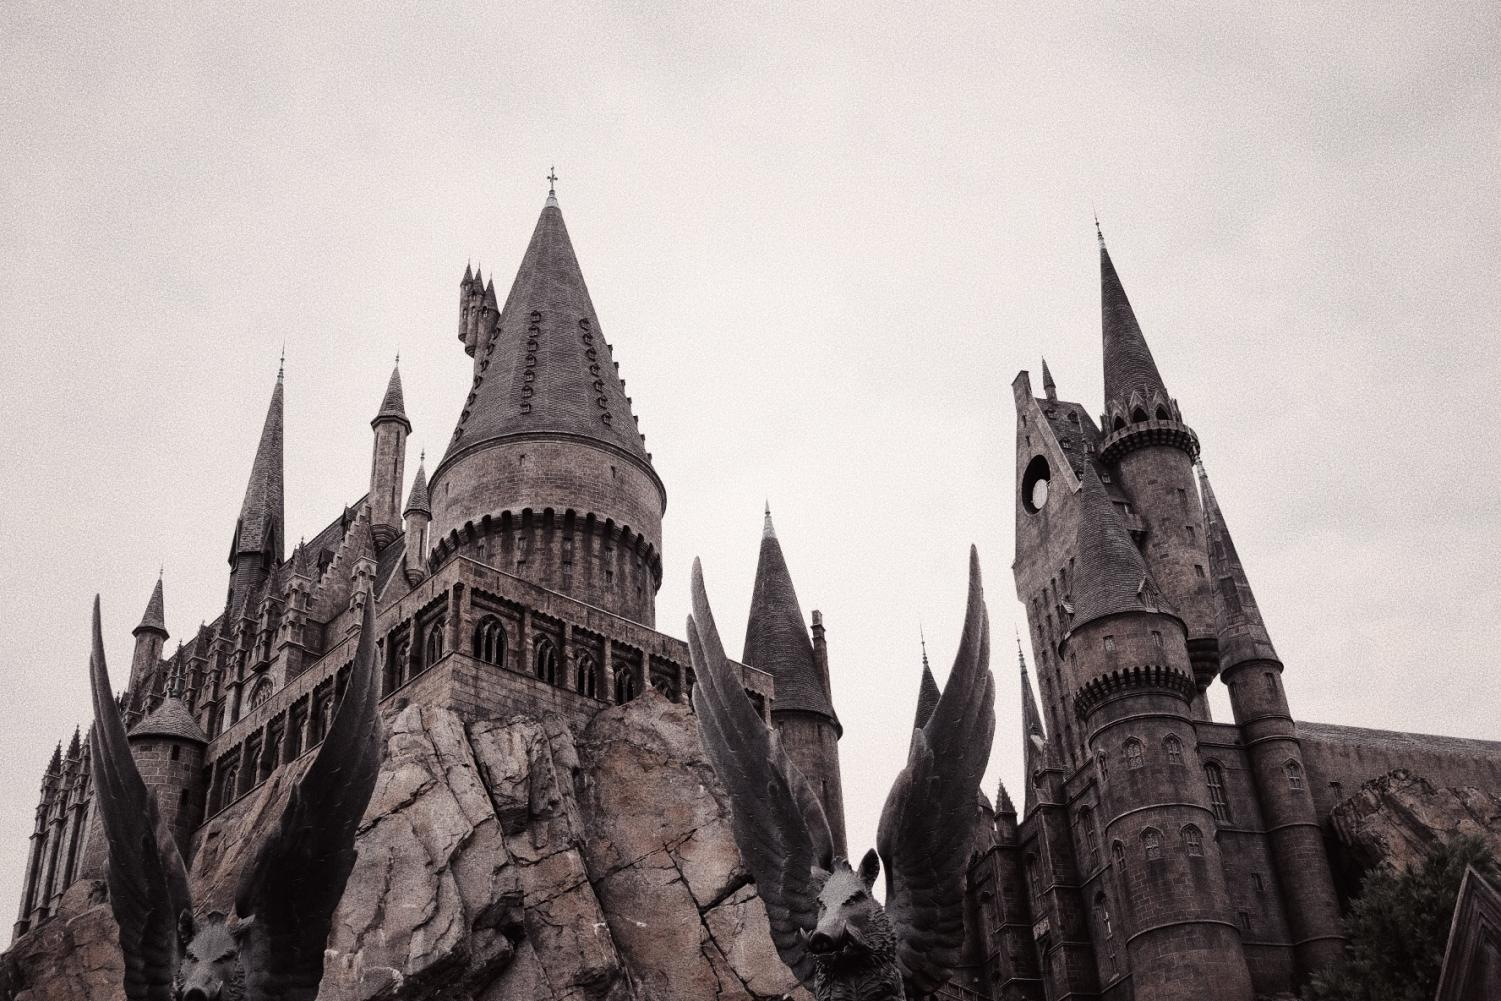 Hogwarts at Universal Orlando's Wizarding World of Harry Potter.